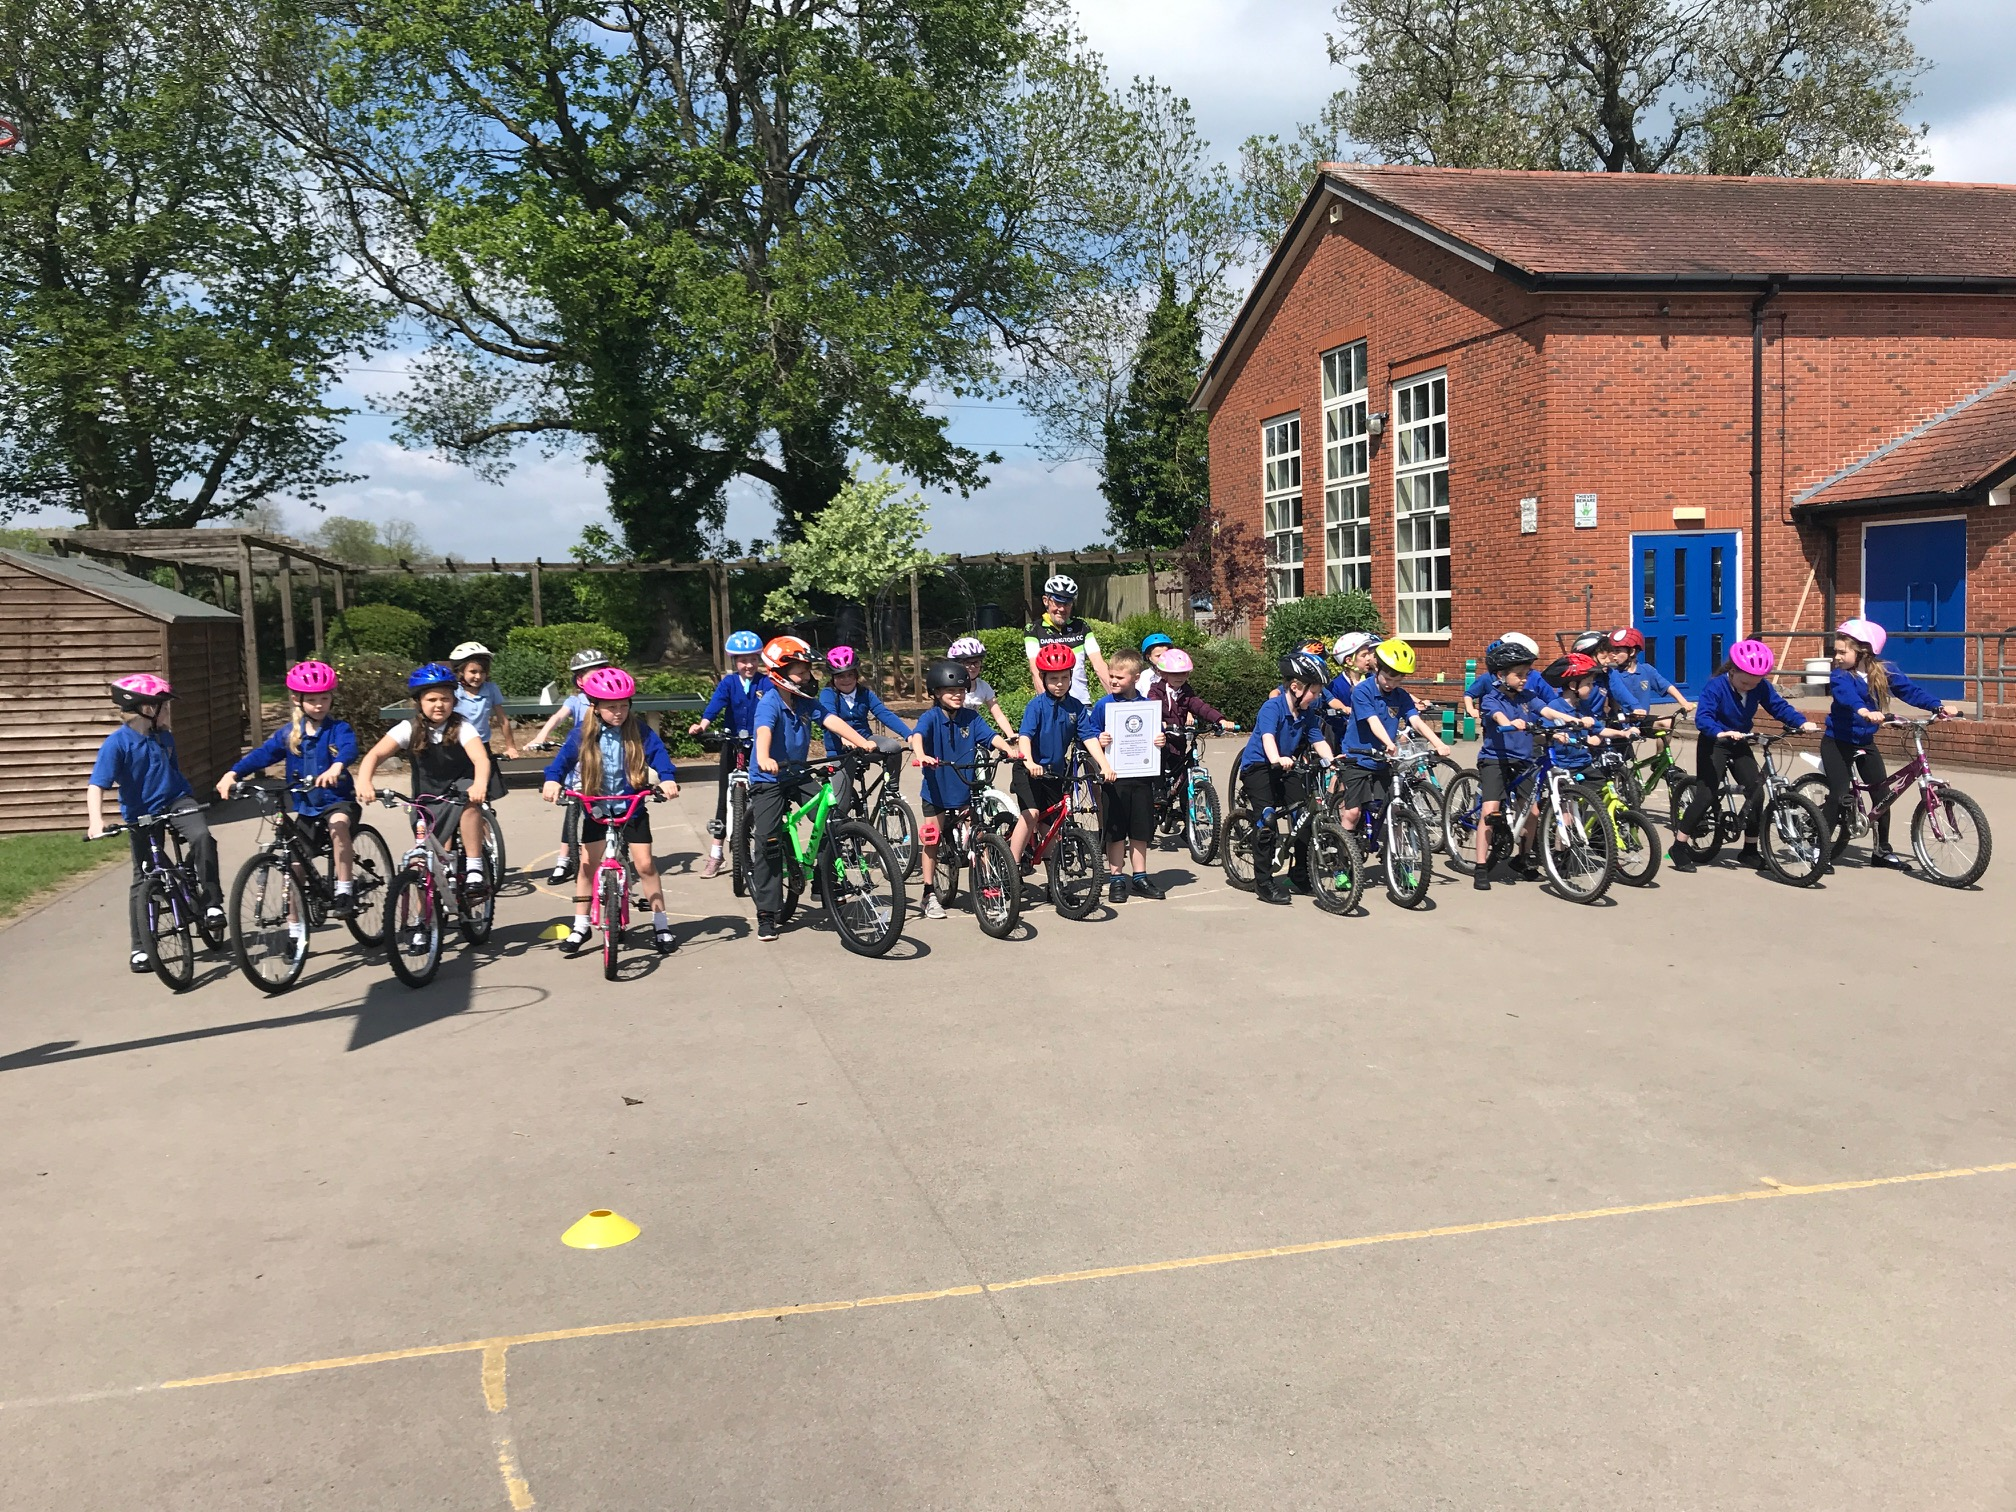 Look at all those bikes, which turned up - there were an equal number cycling in another playground!